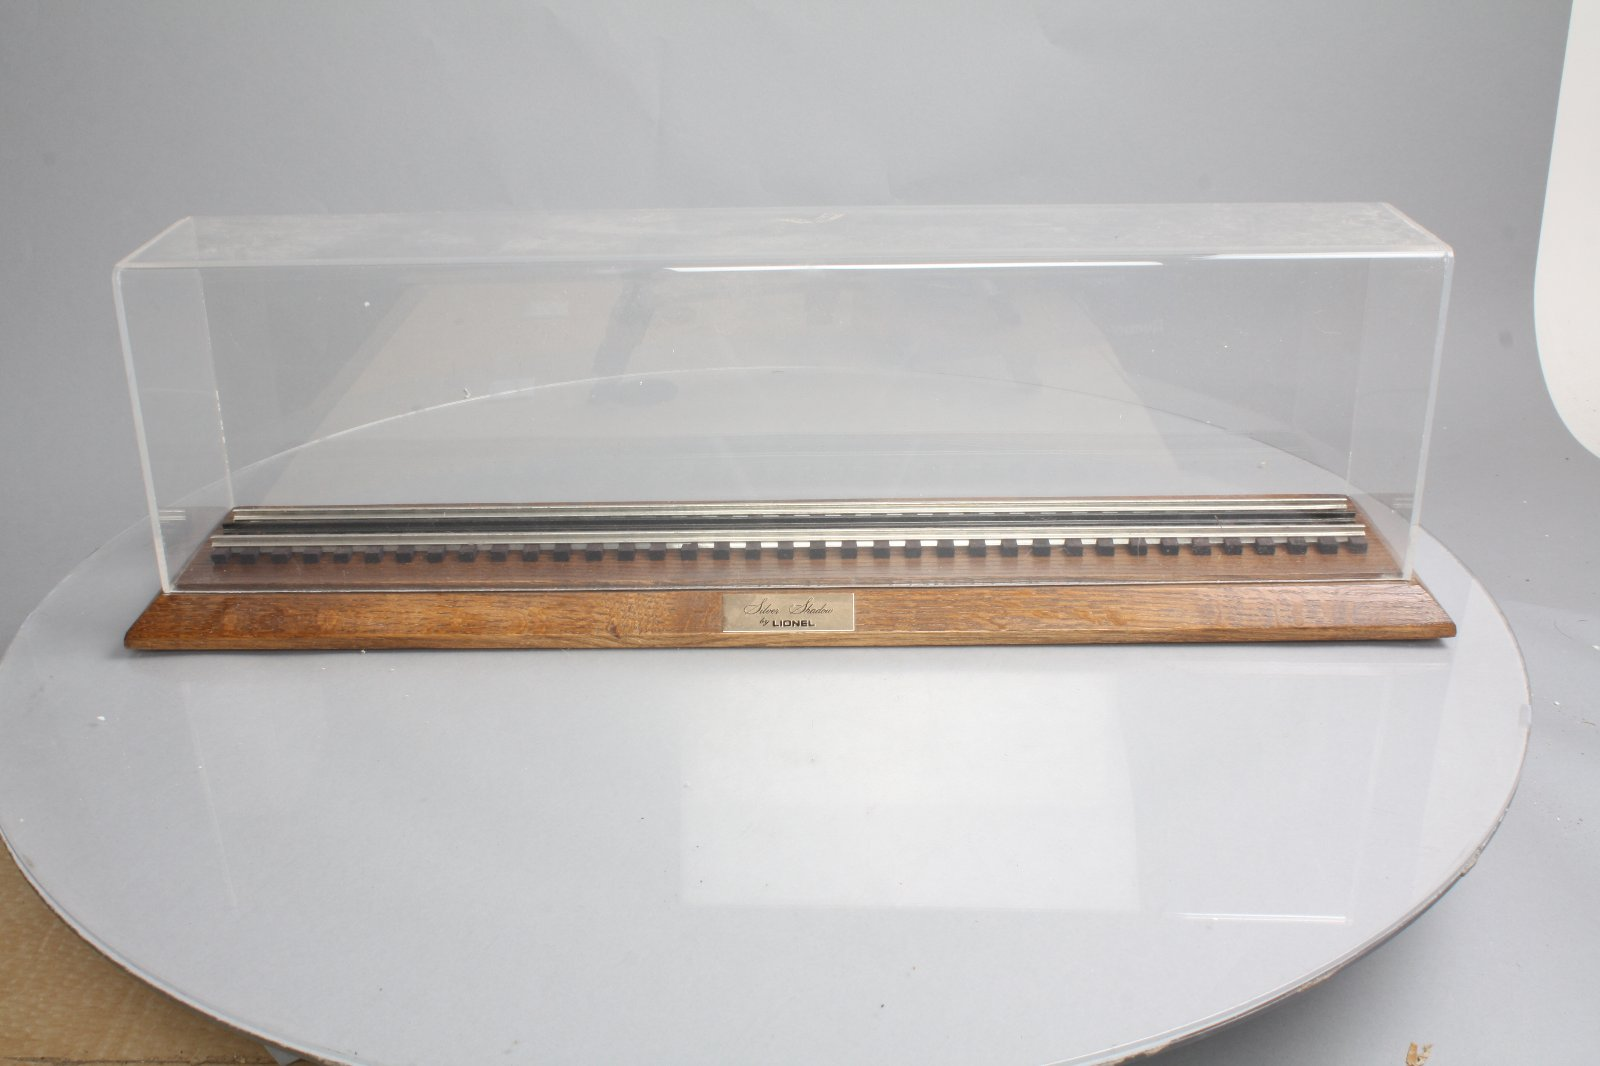 Lionel 24SS Silver Shadow 2ft Display Case w/Wooden Base EX  Lionel 24SS